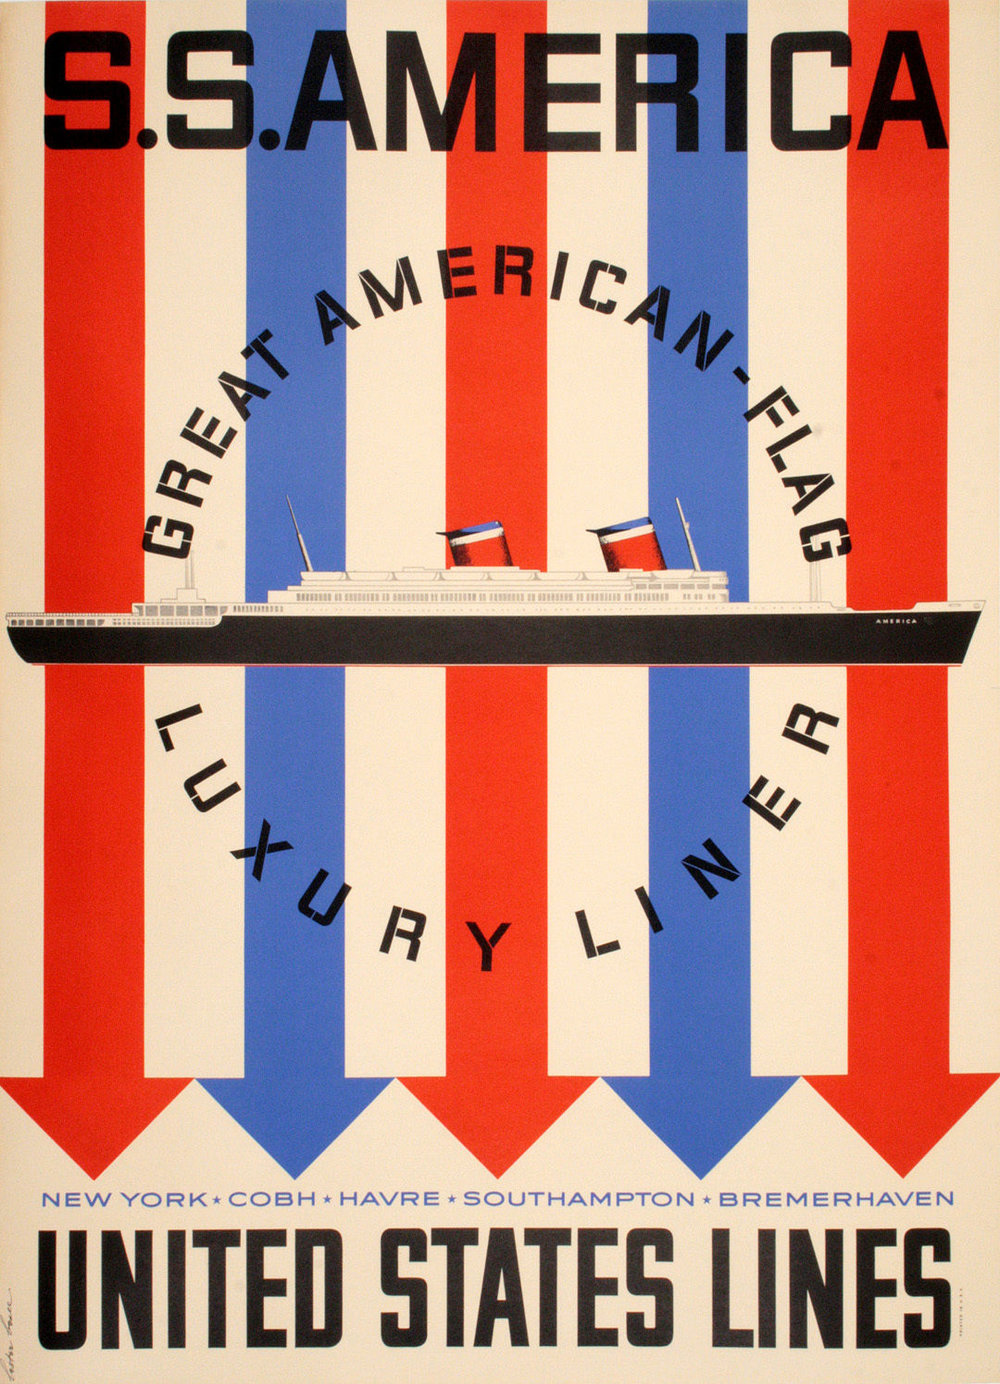 original-vintage-travel-poster-s-s-america-united-states-lines-by-lester-beall.jpg